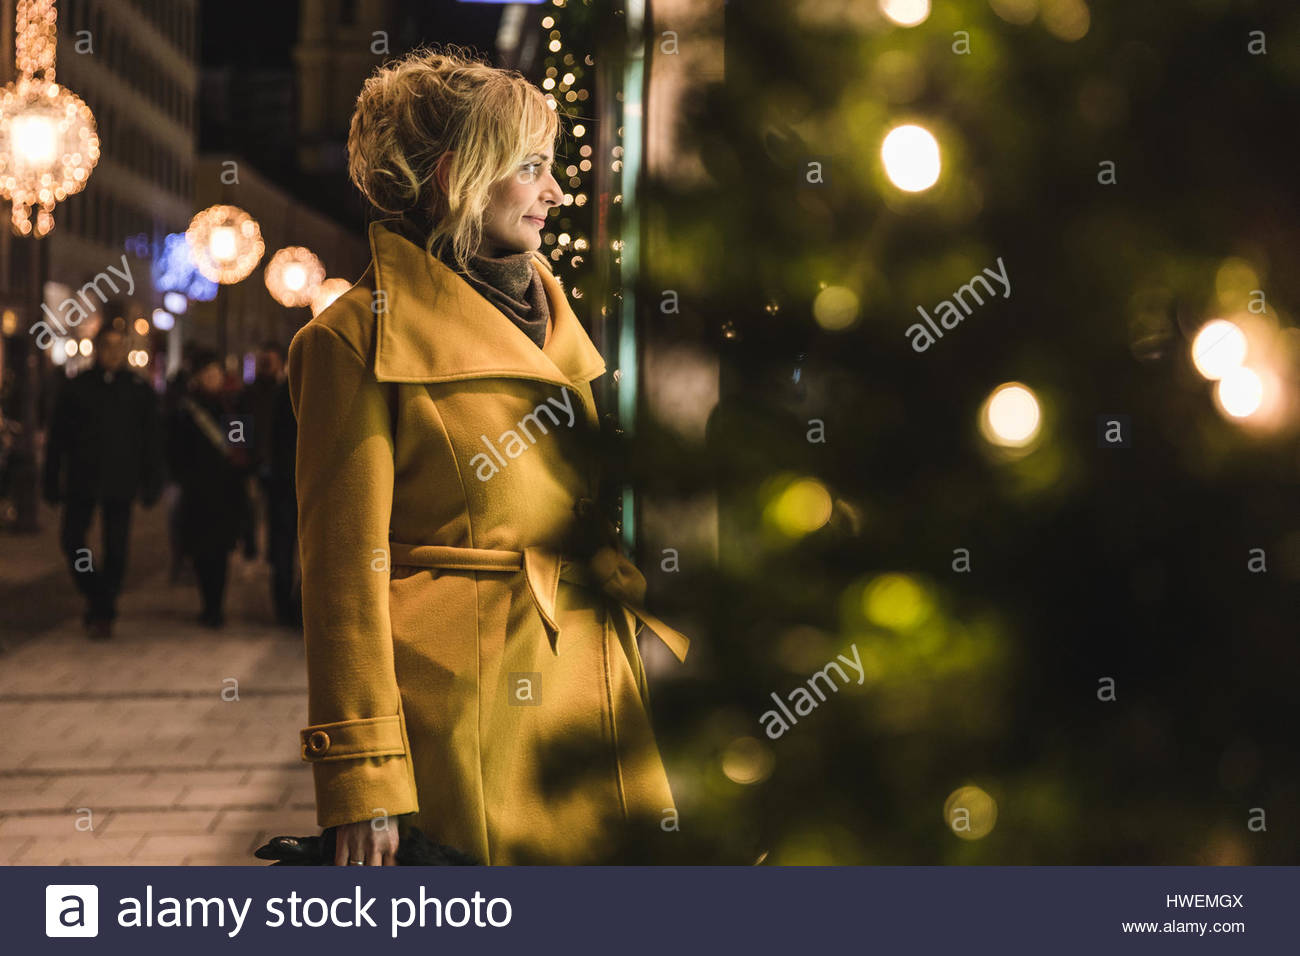 Young woman window shopping de Noël dans la nuit, Munich, Allemagne Photo Stock